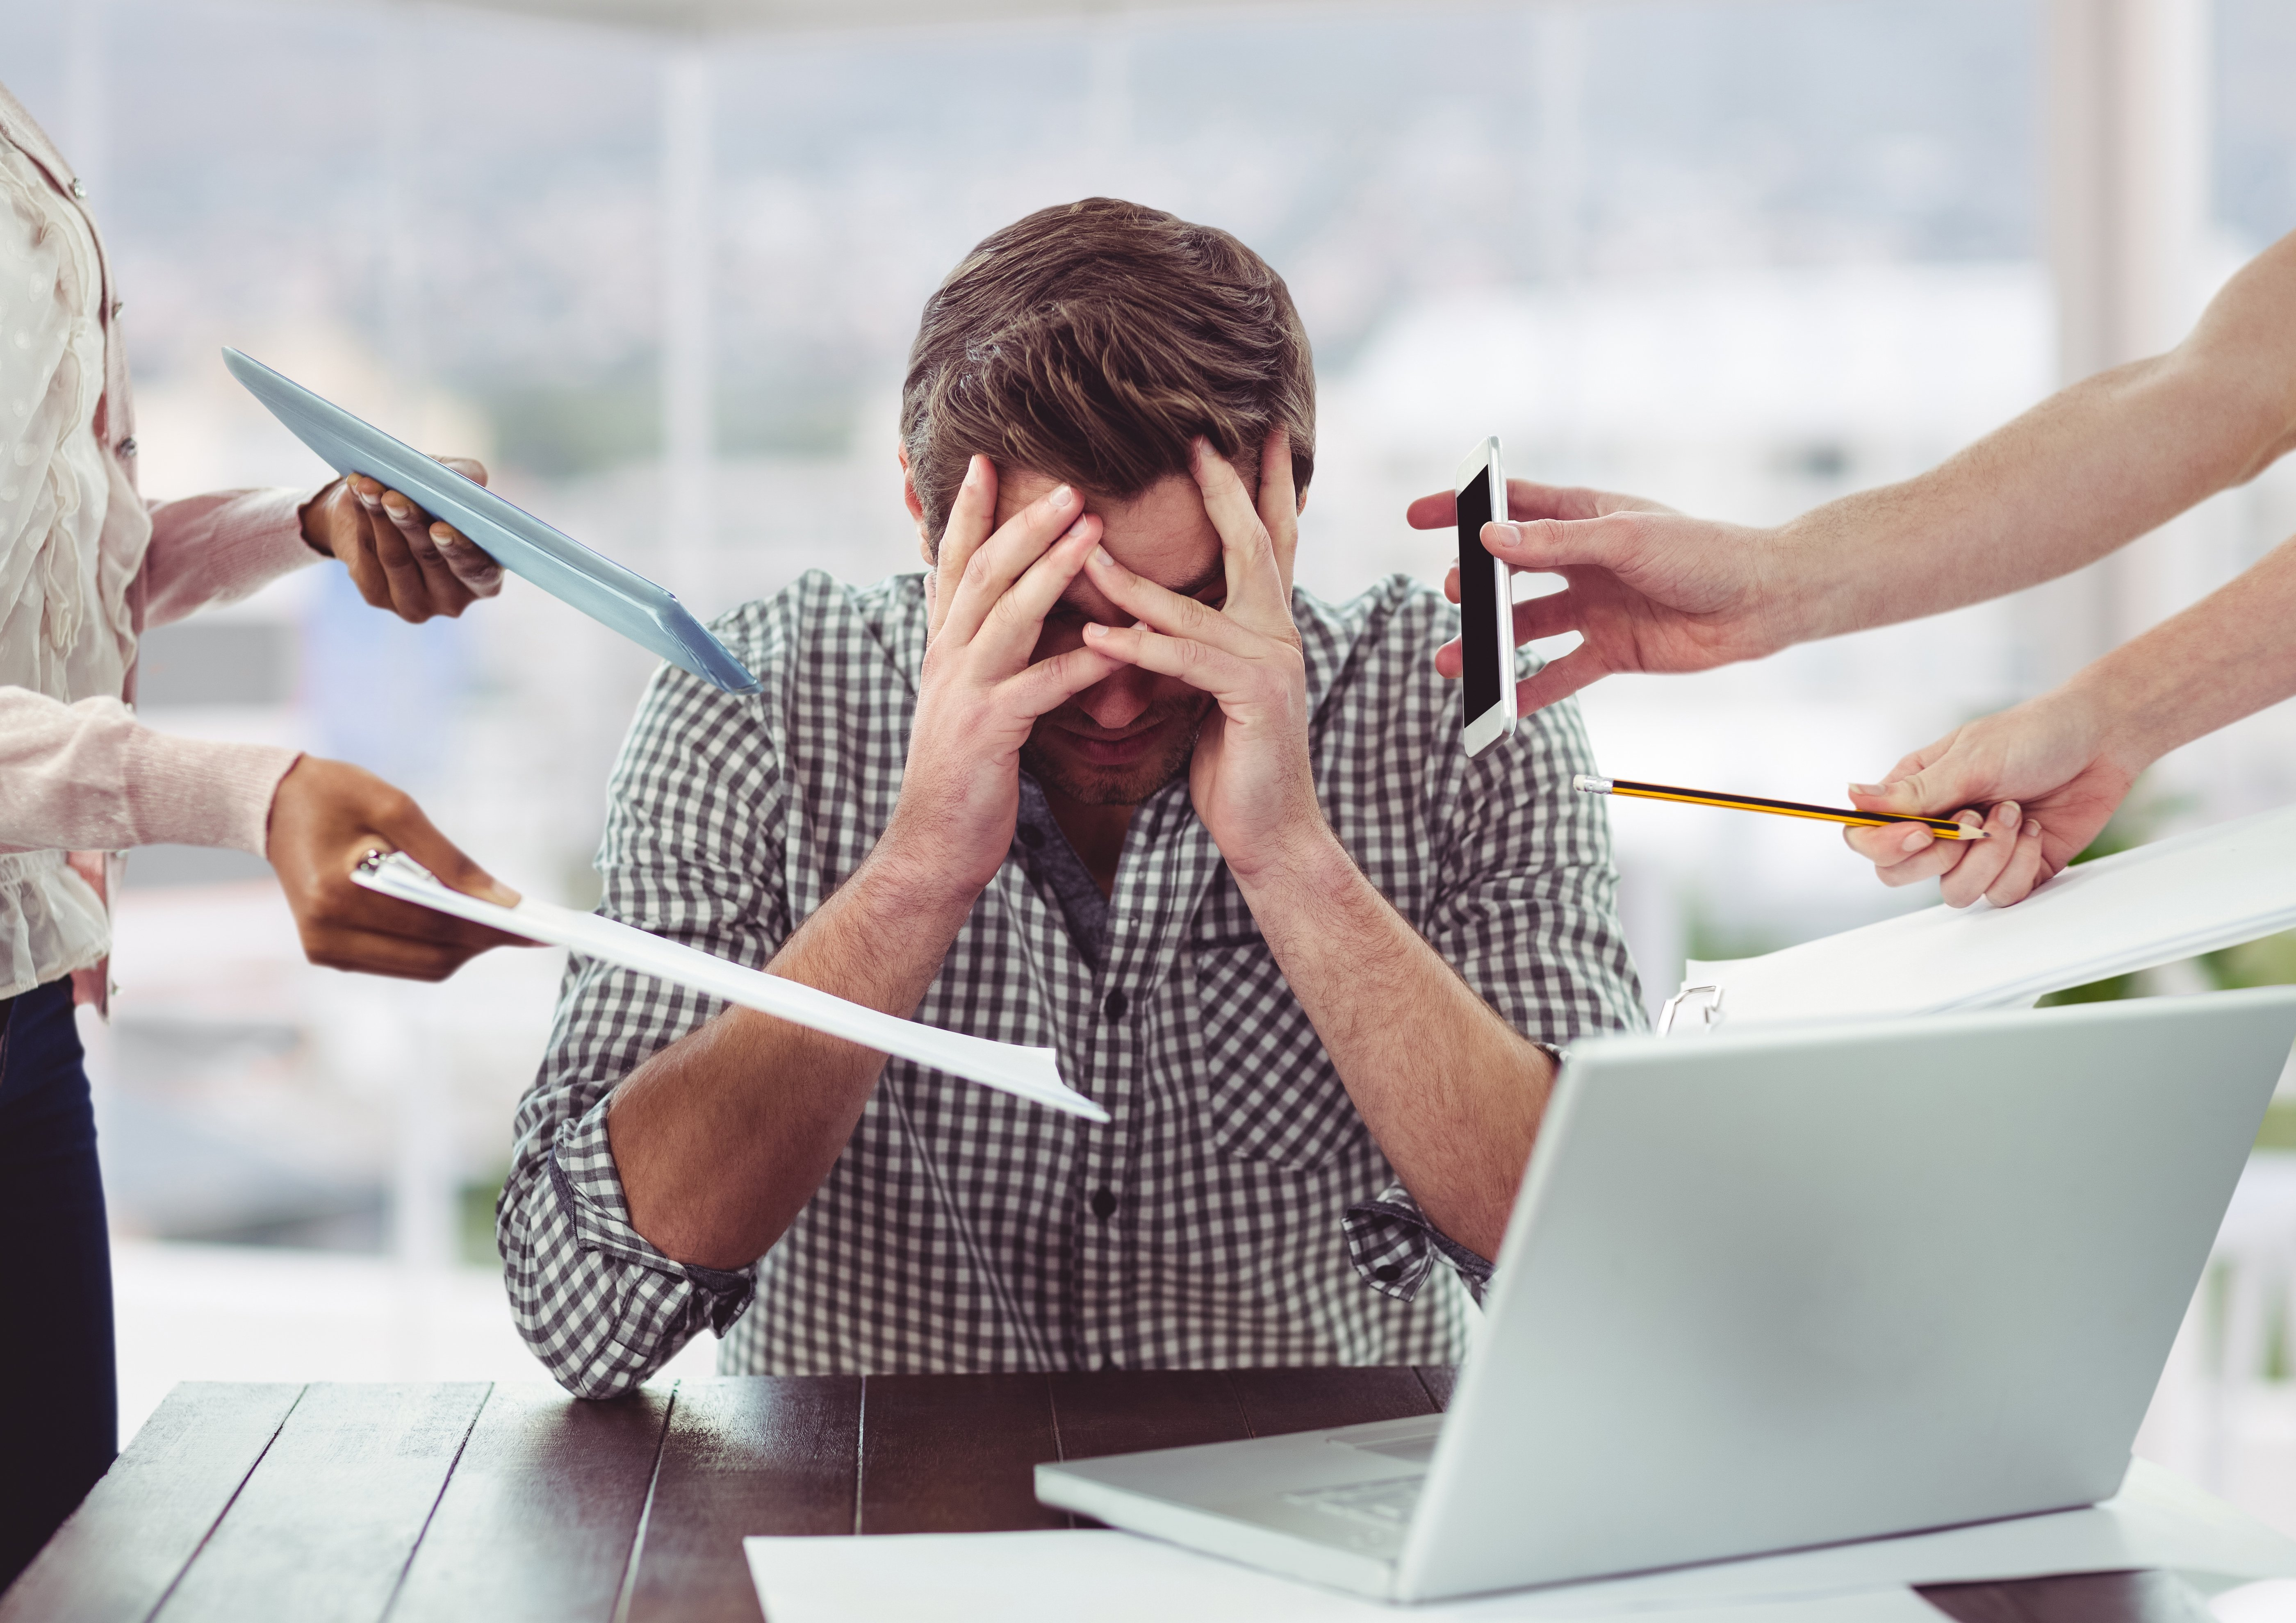 Stressed man frustrated with electronic devices in office